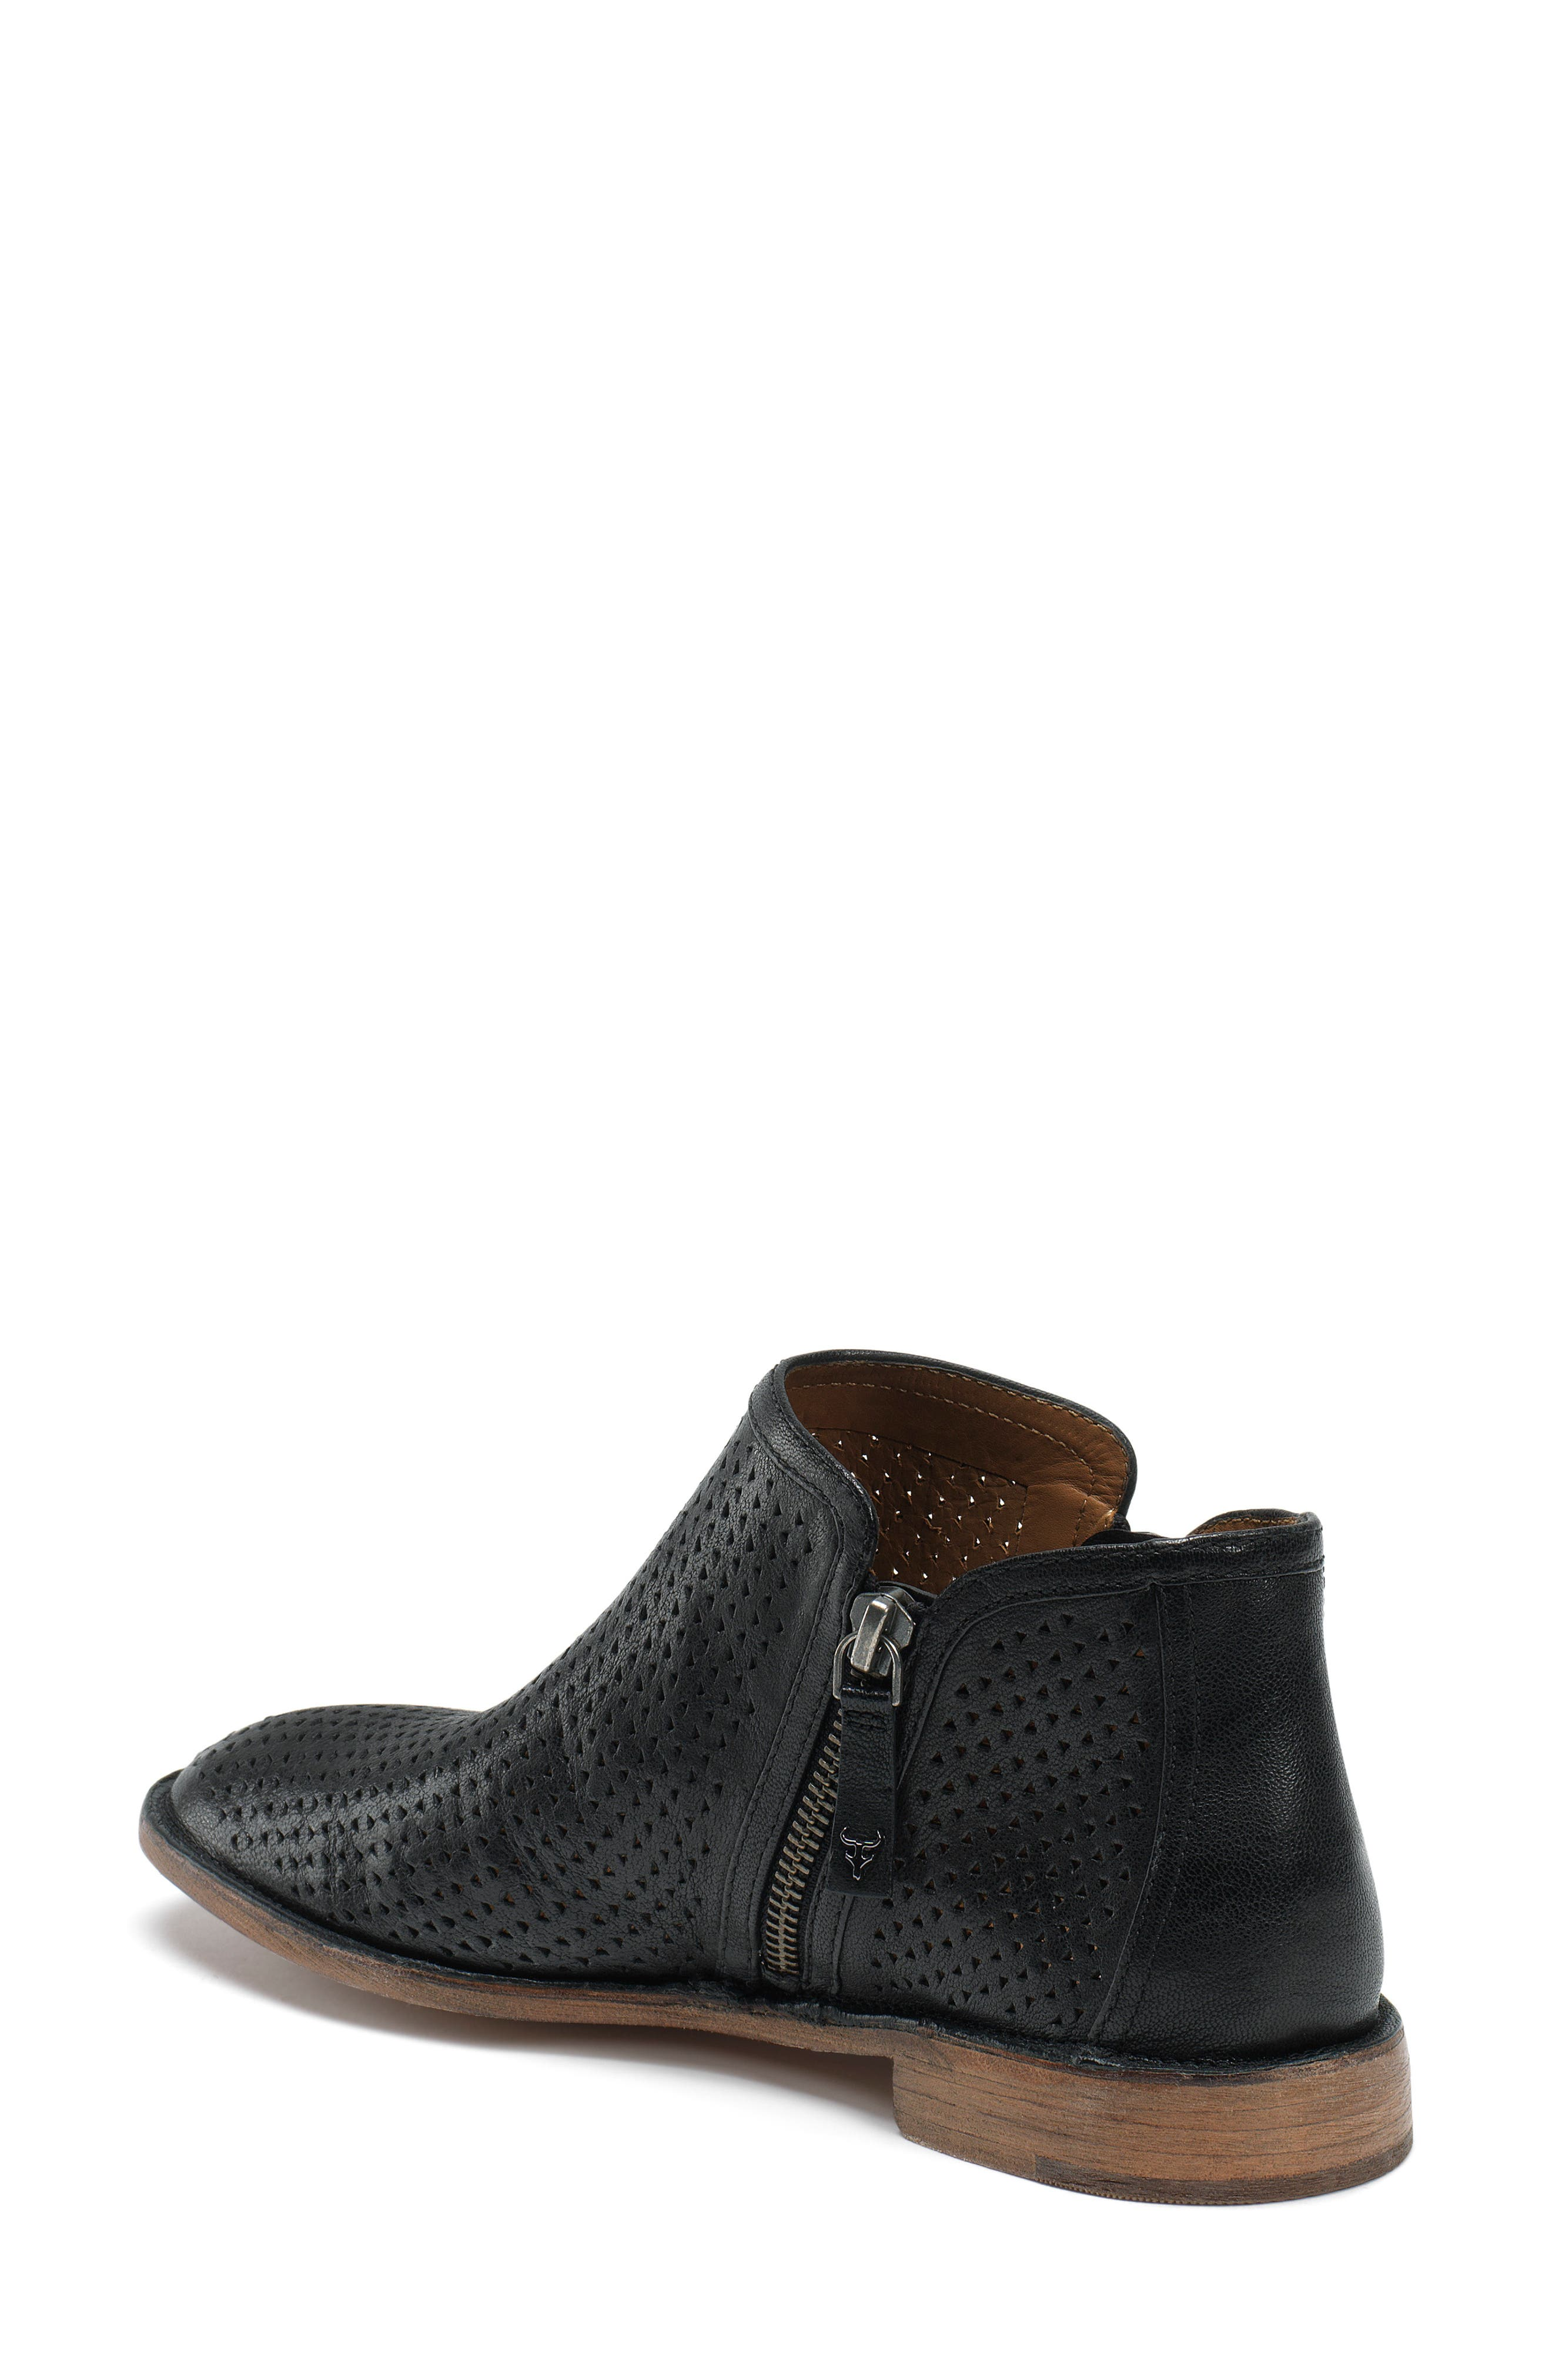 Addison Low Perforated Bootie,                             Alternate thumbnail 2, color,                             Black Leather